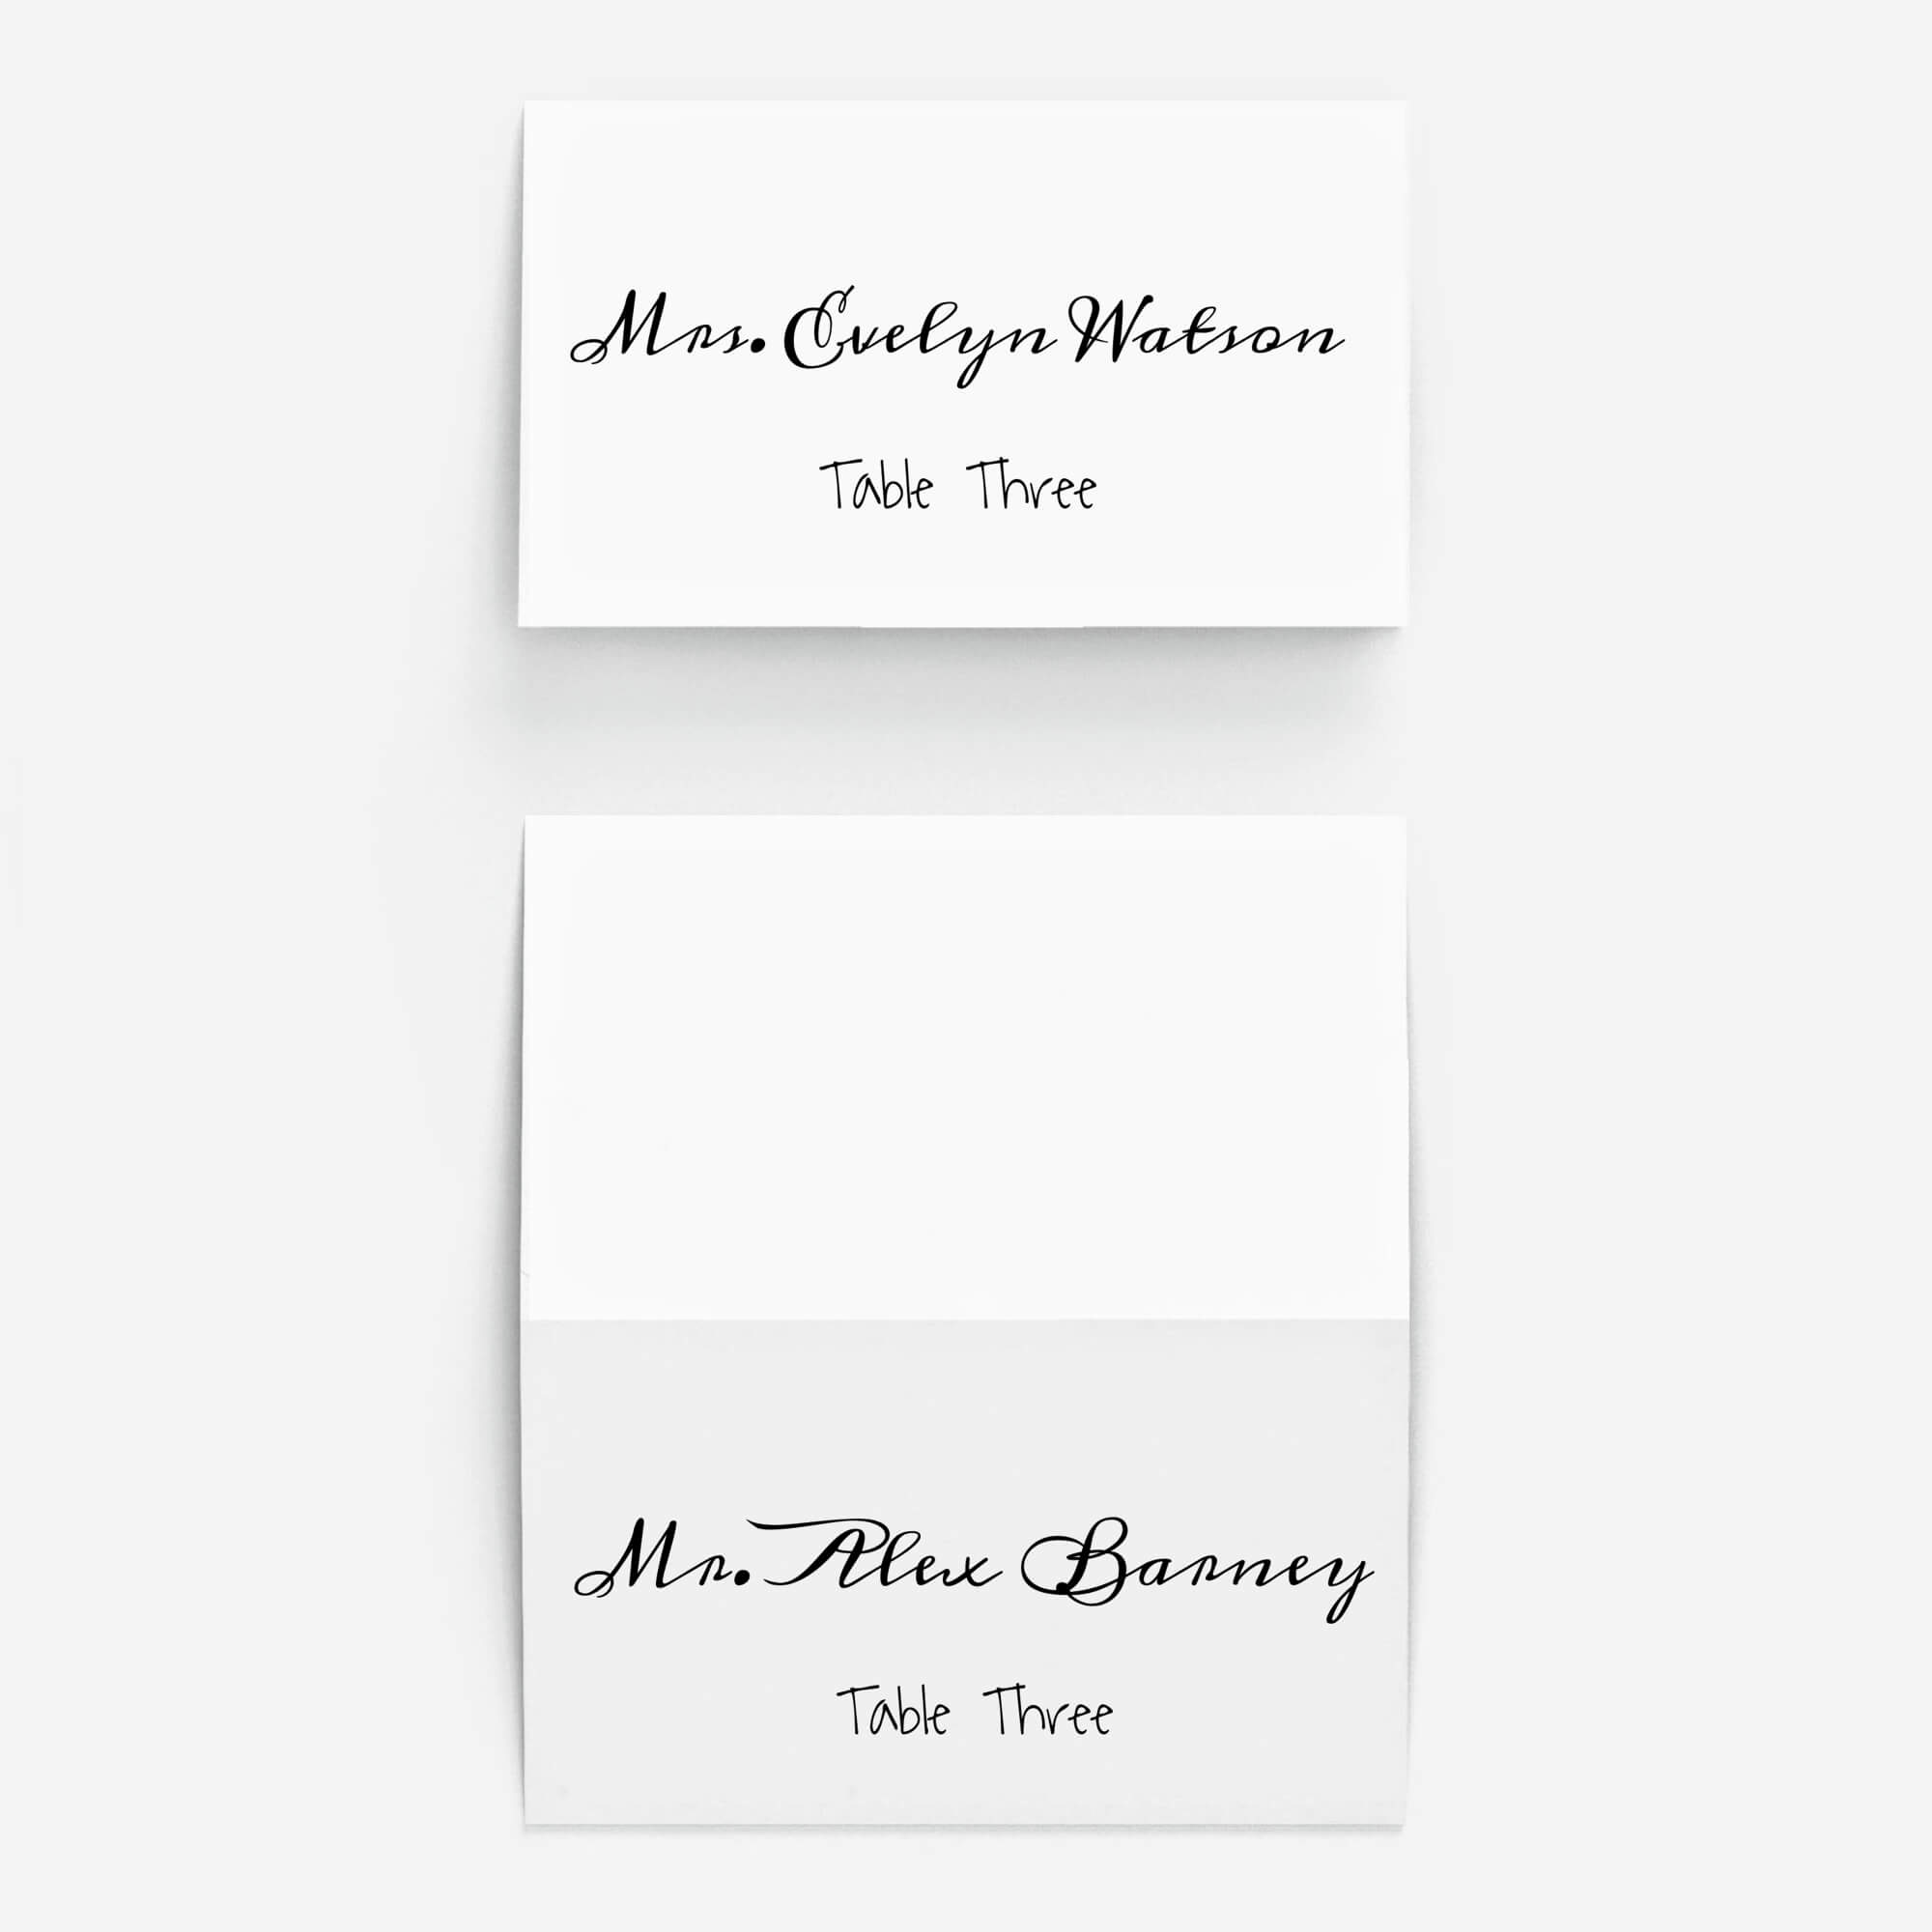 Pinplace Cards Online On 10 Stunning Fonts For Diy For Celebrate It Templates Place Cards